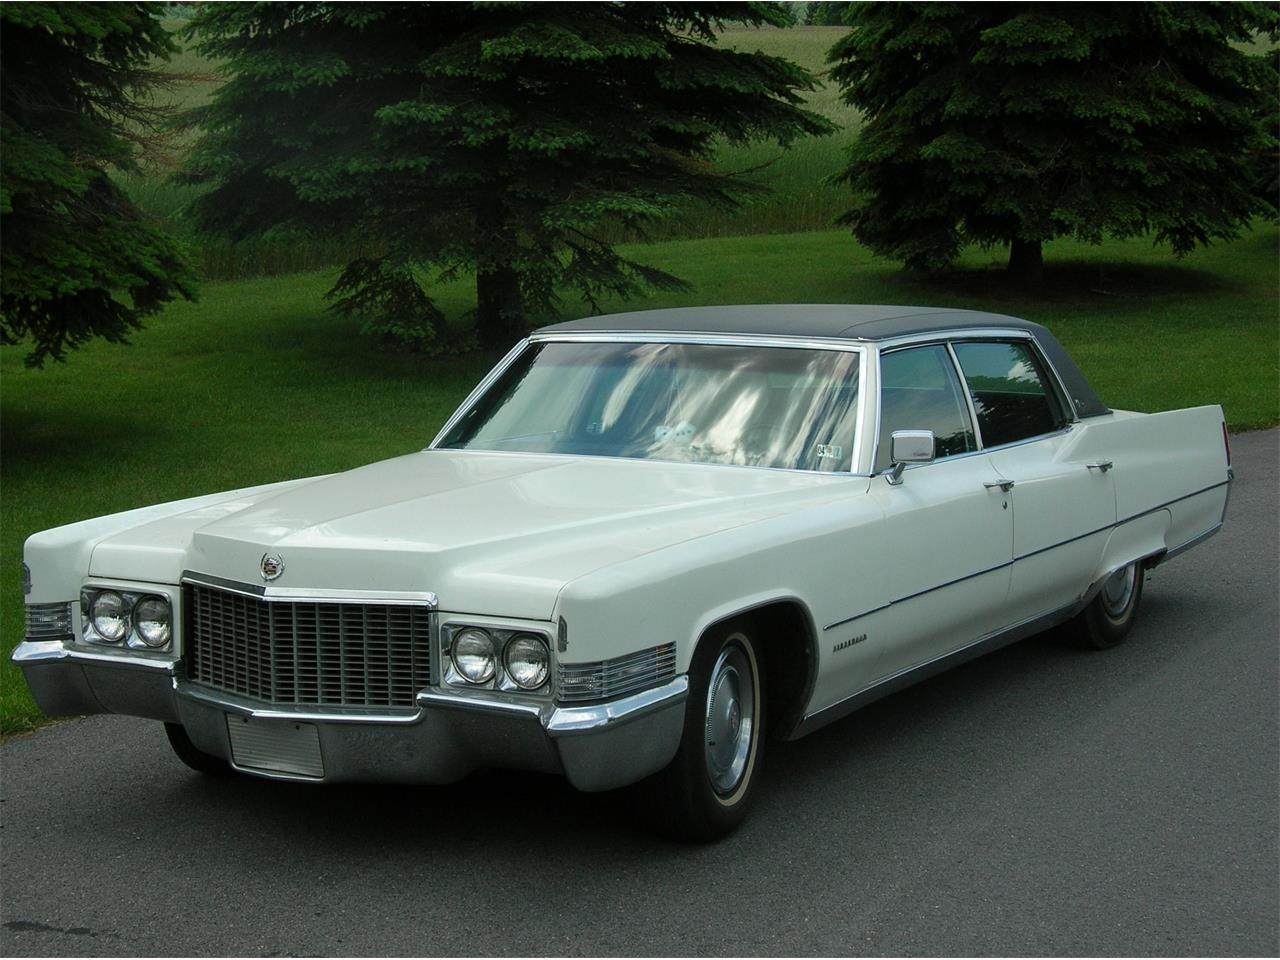 1970 Cadillac Fleetwood for sale in Shamokin, PA